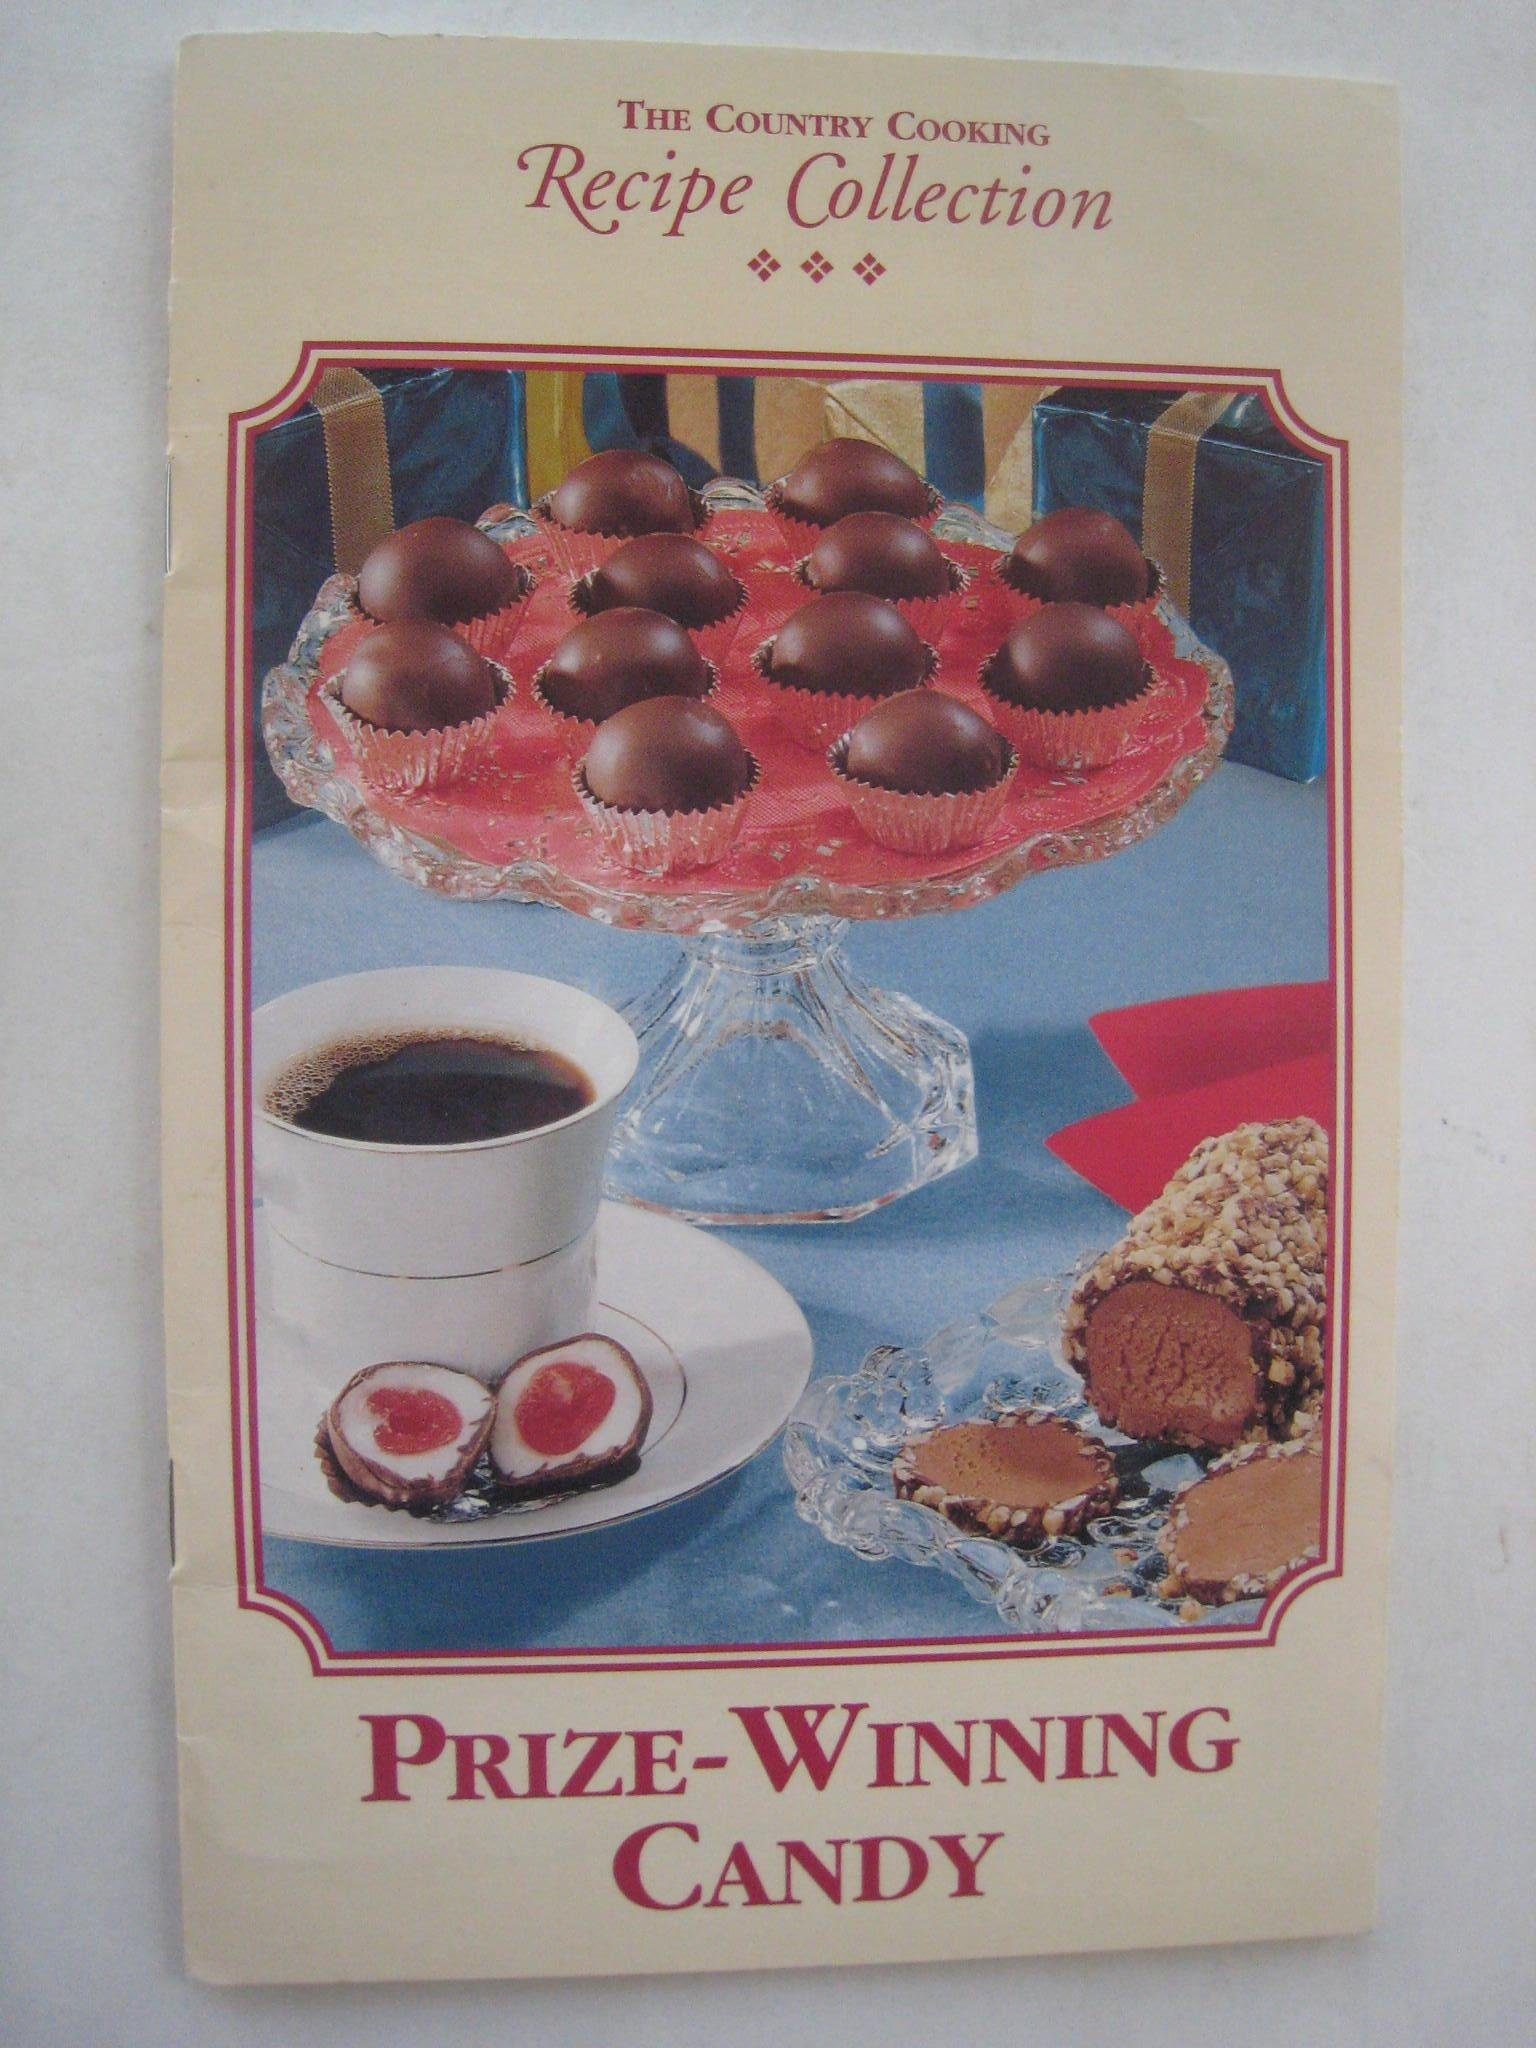 Prize-Winning Candy (The Country Cooking Recipe Collection